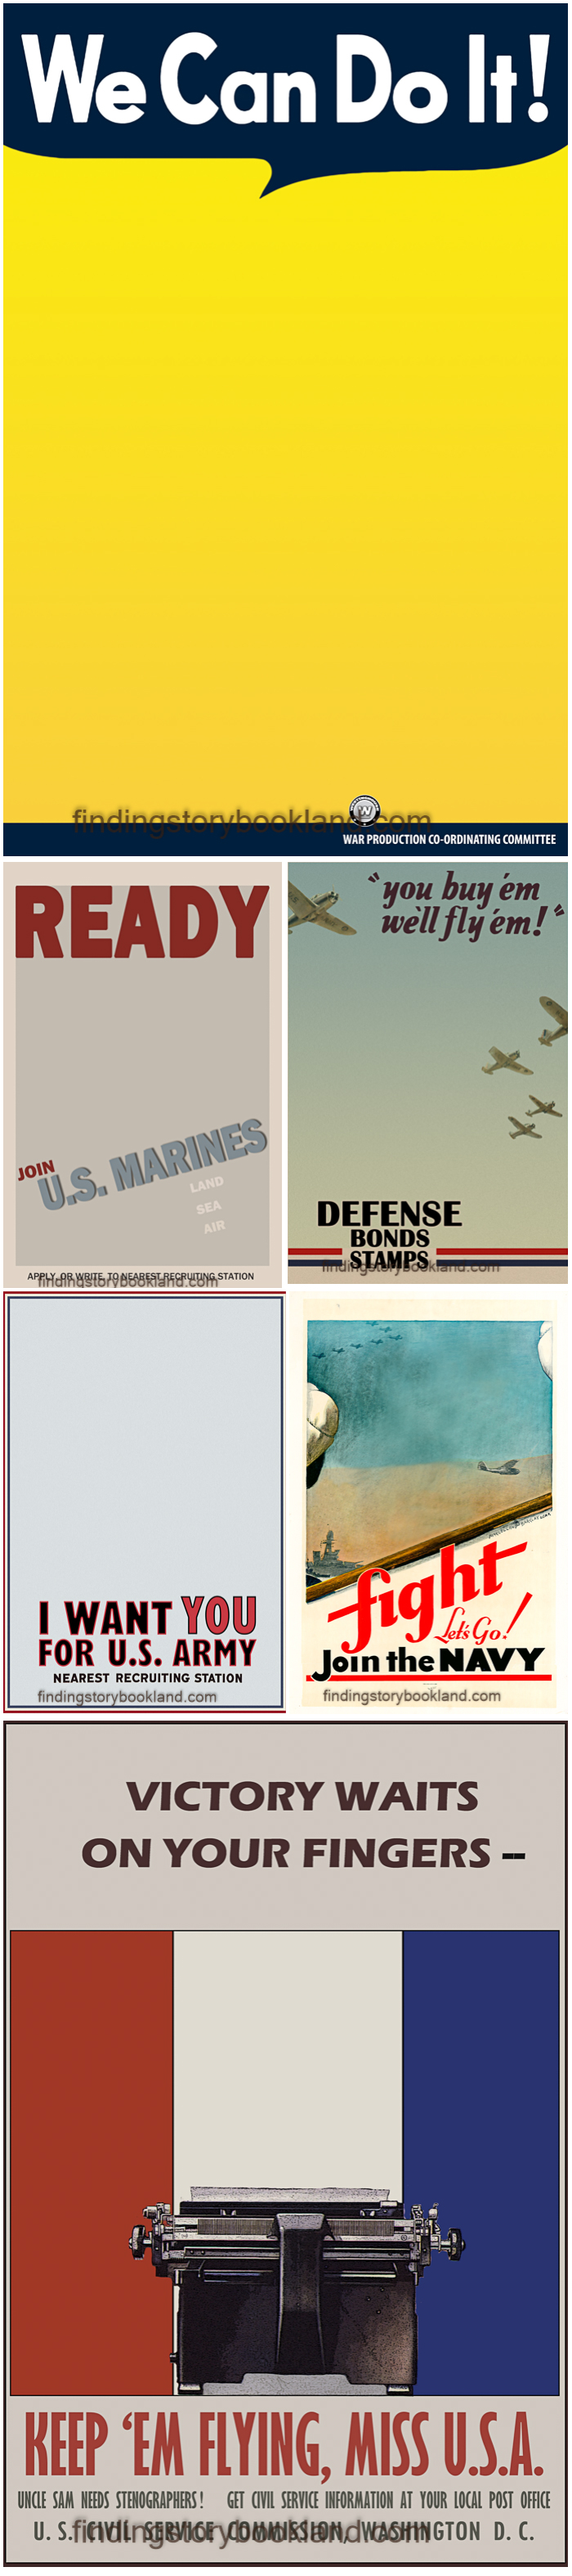 A Set Of 11 Free Able Vintage Wwii Propaganda Poster Background Photo Templates Perfect For Anyone To Make Your Own Personalized